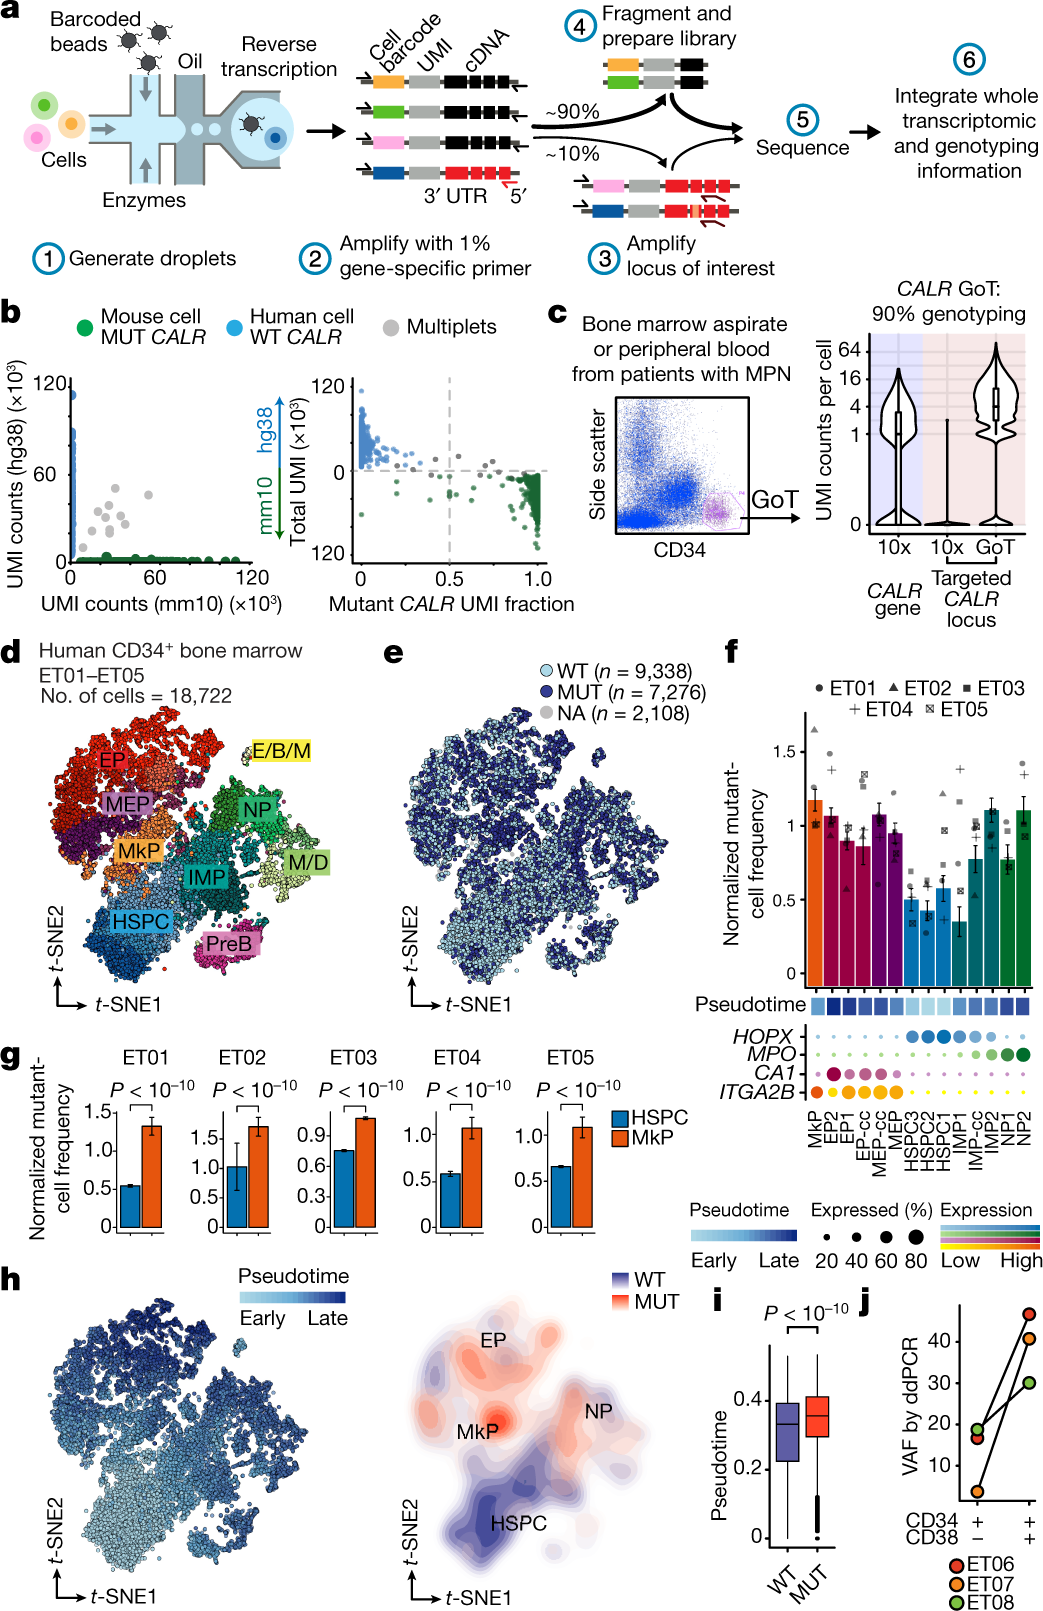 Somatic mutations and cell identity linked by Genotyping of